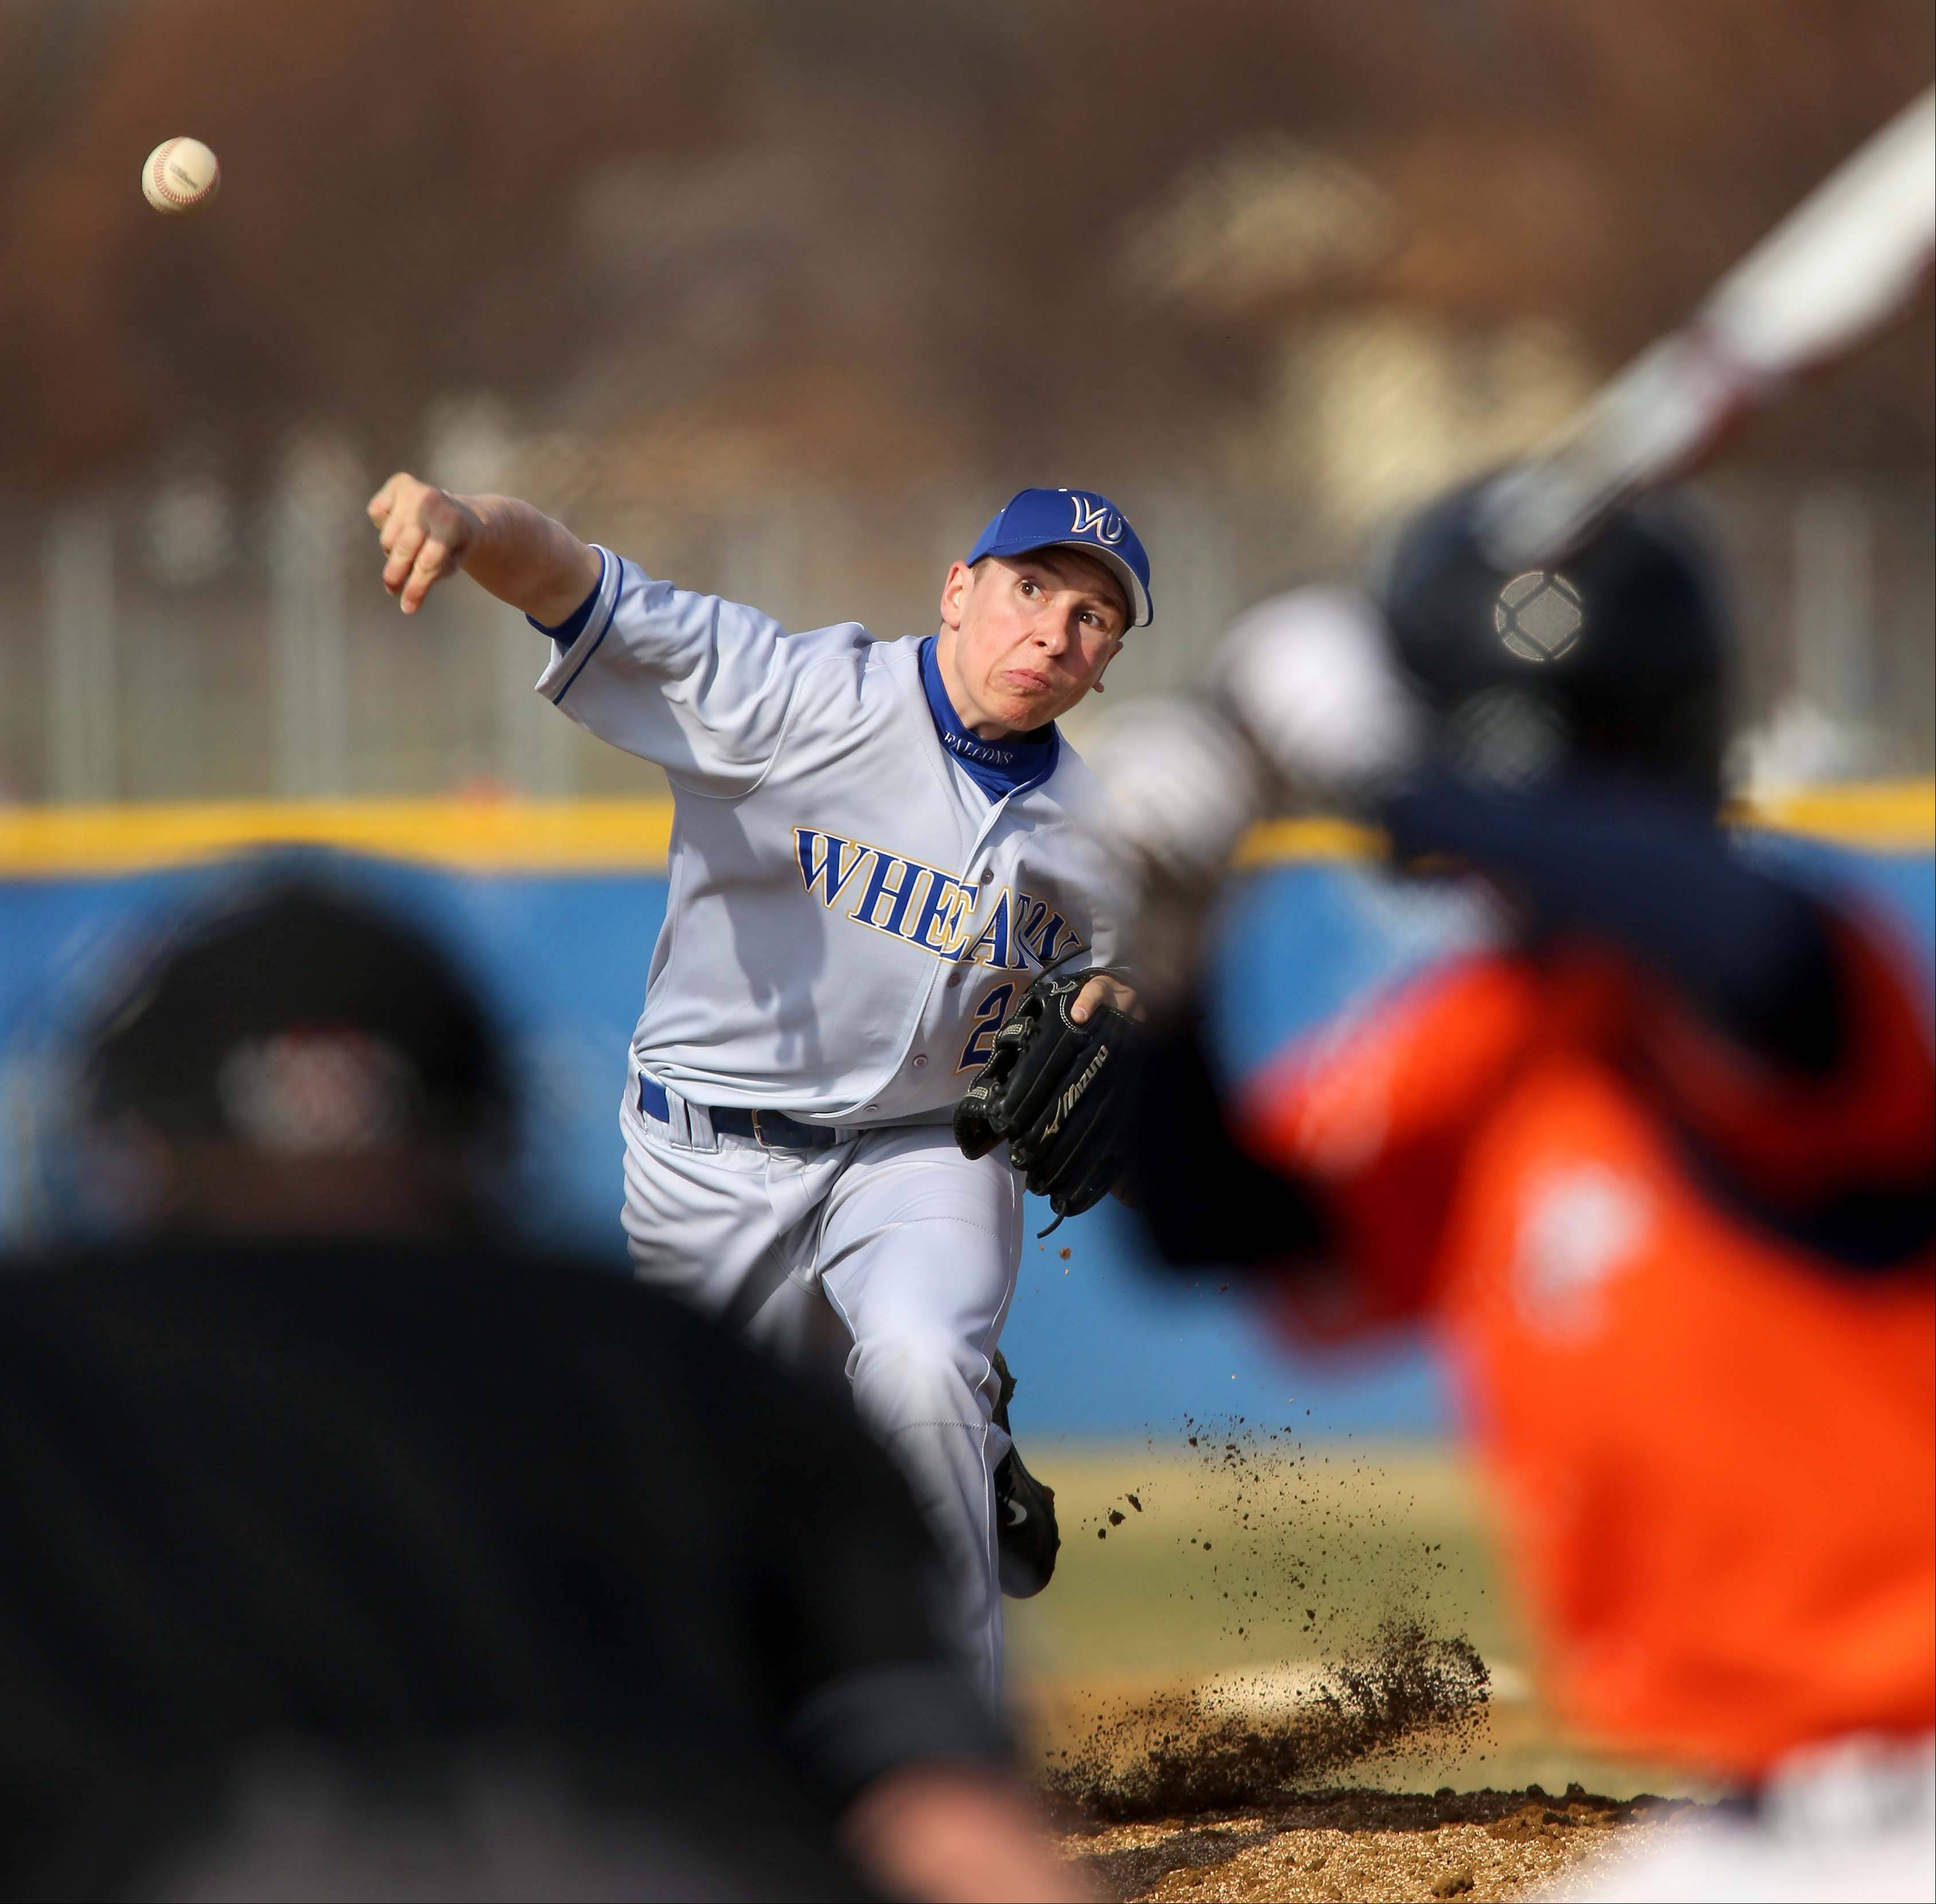 Lake Bachar of Wheaton North pitches against Naperville North during baseball on Monday in Naperville.